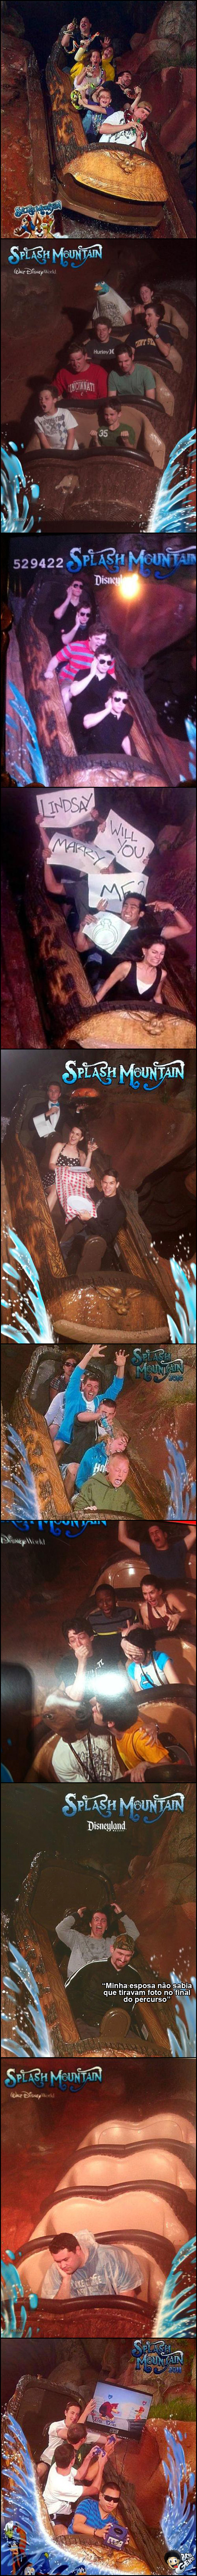 SPLASH MOUNTAIN DA DISNEY